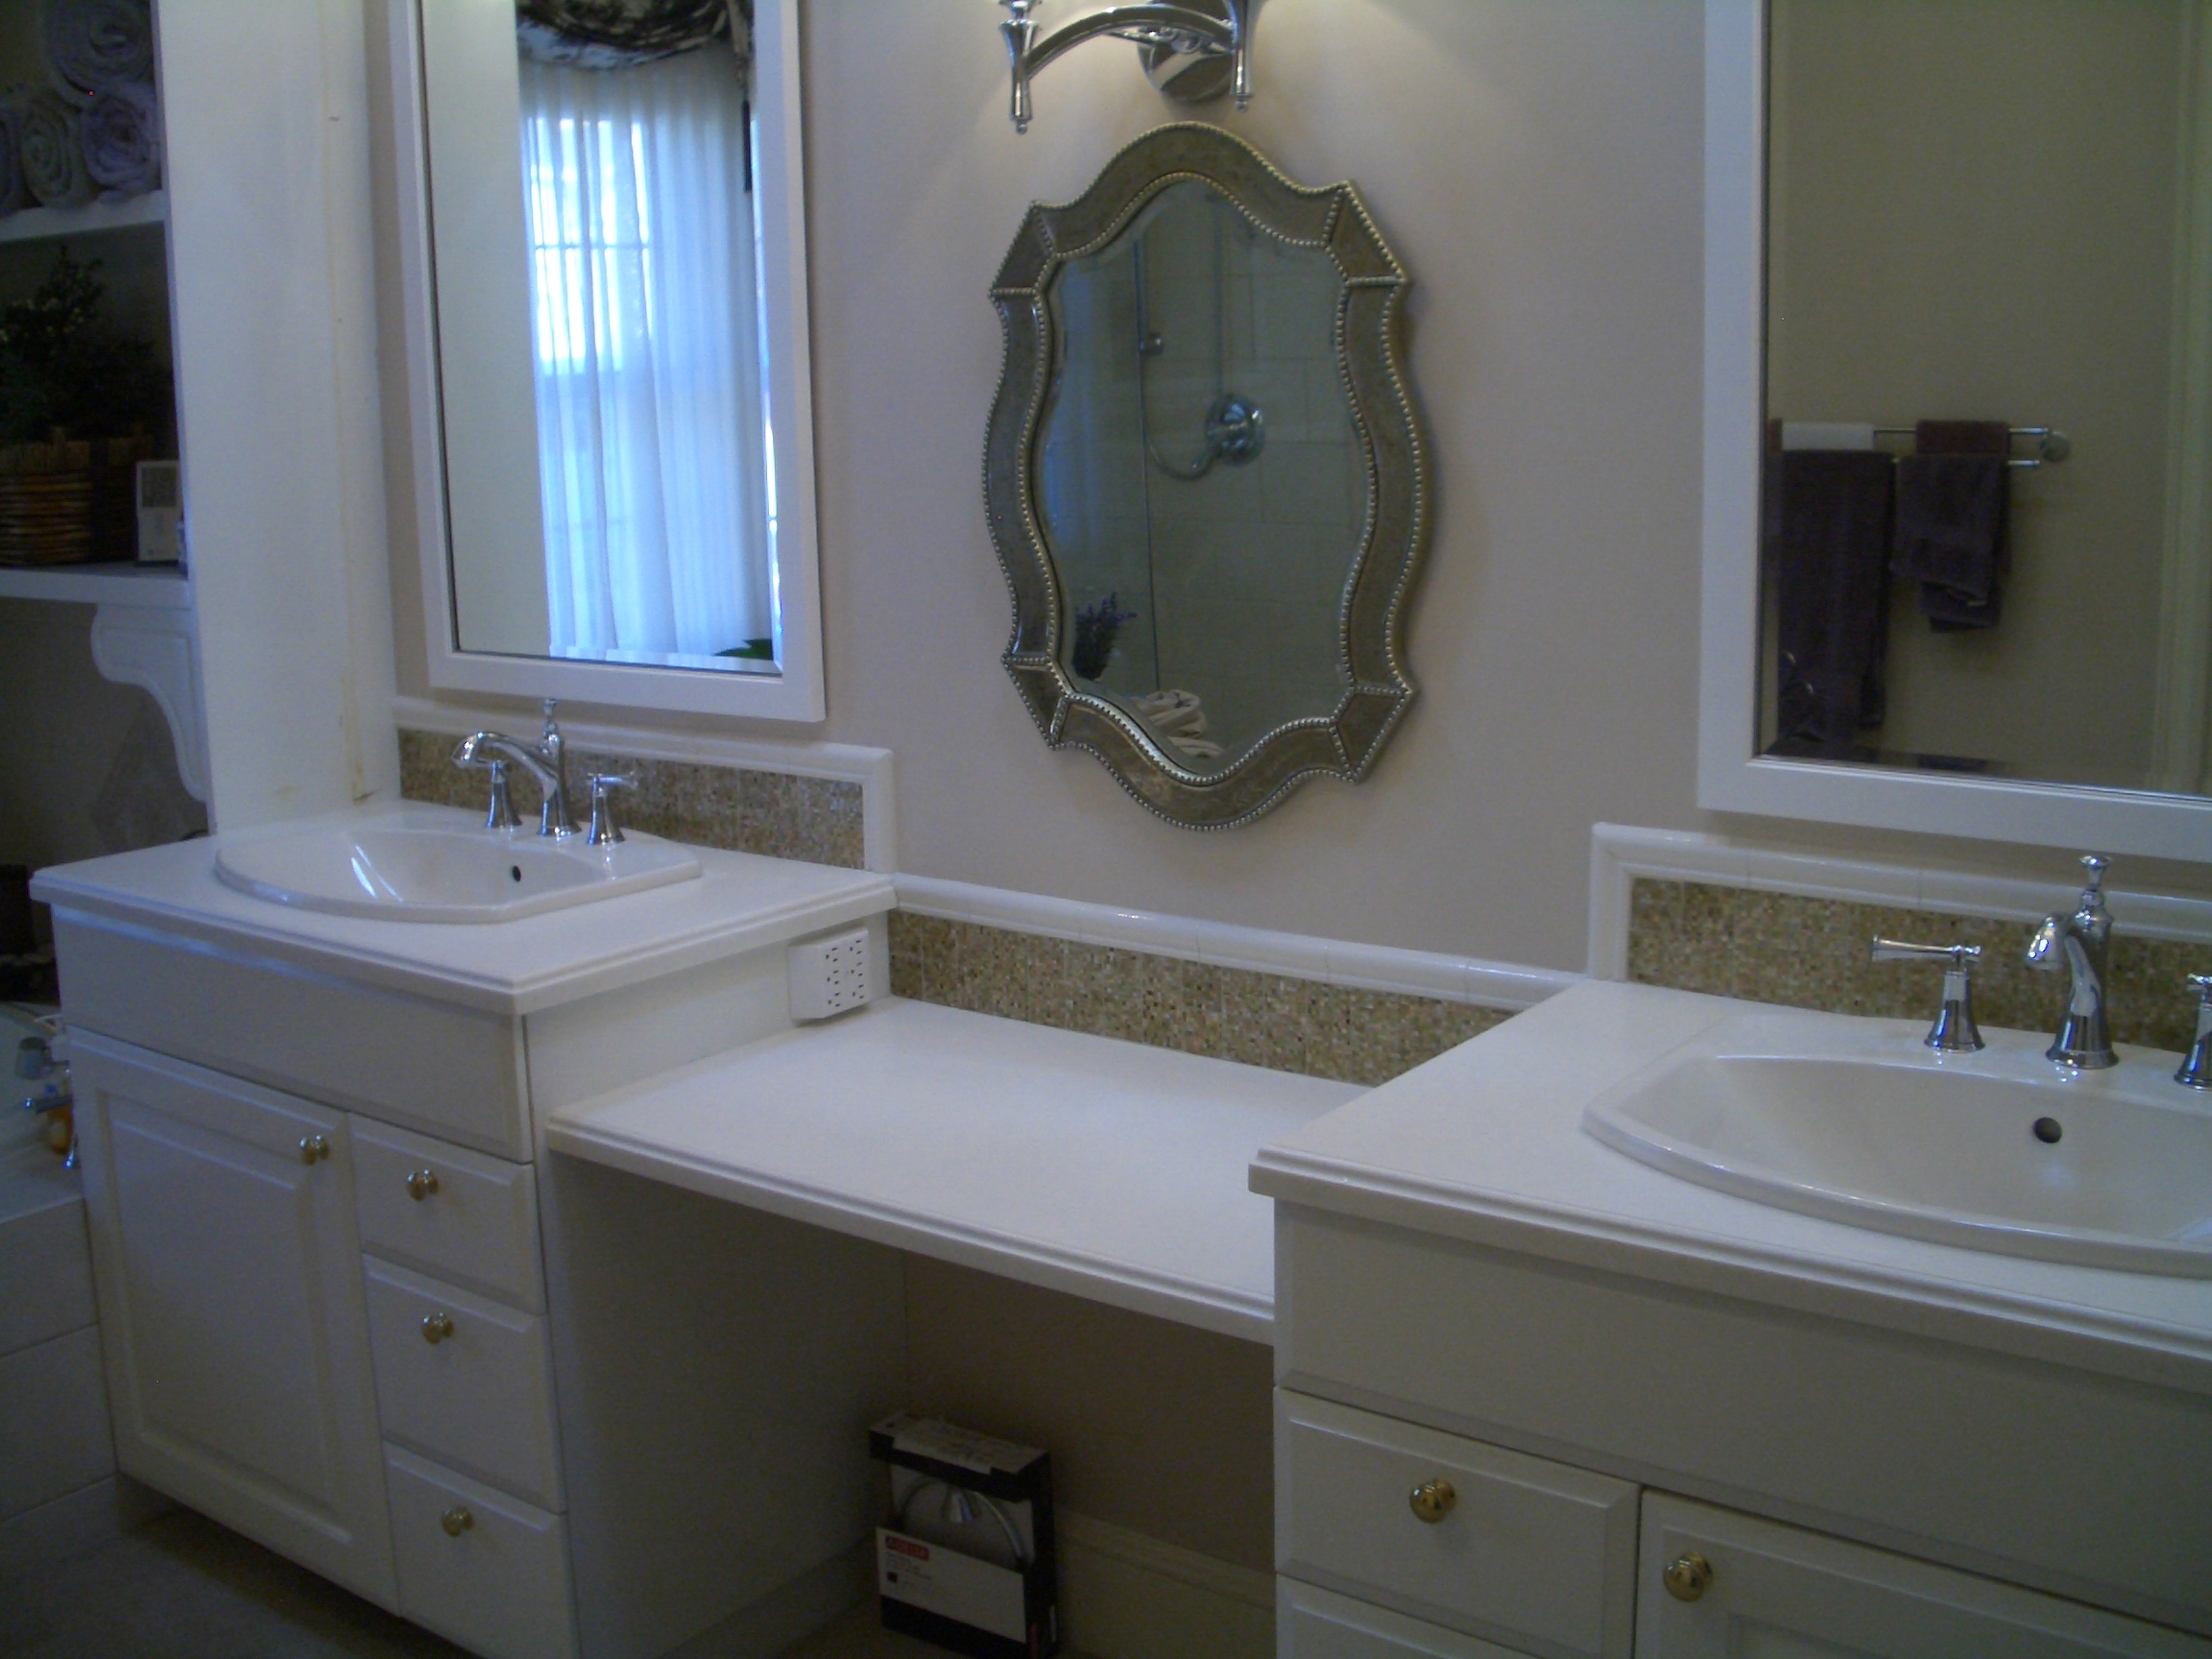 Vanity Countertop Options : Staron hard surface countertop installation contractor in Fort Collins ...